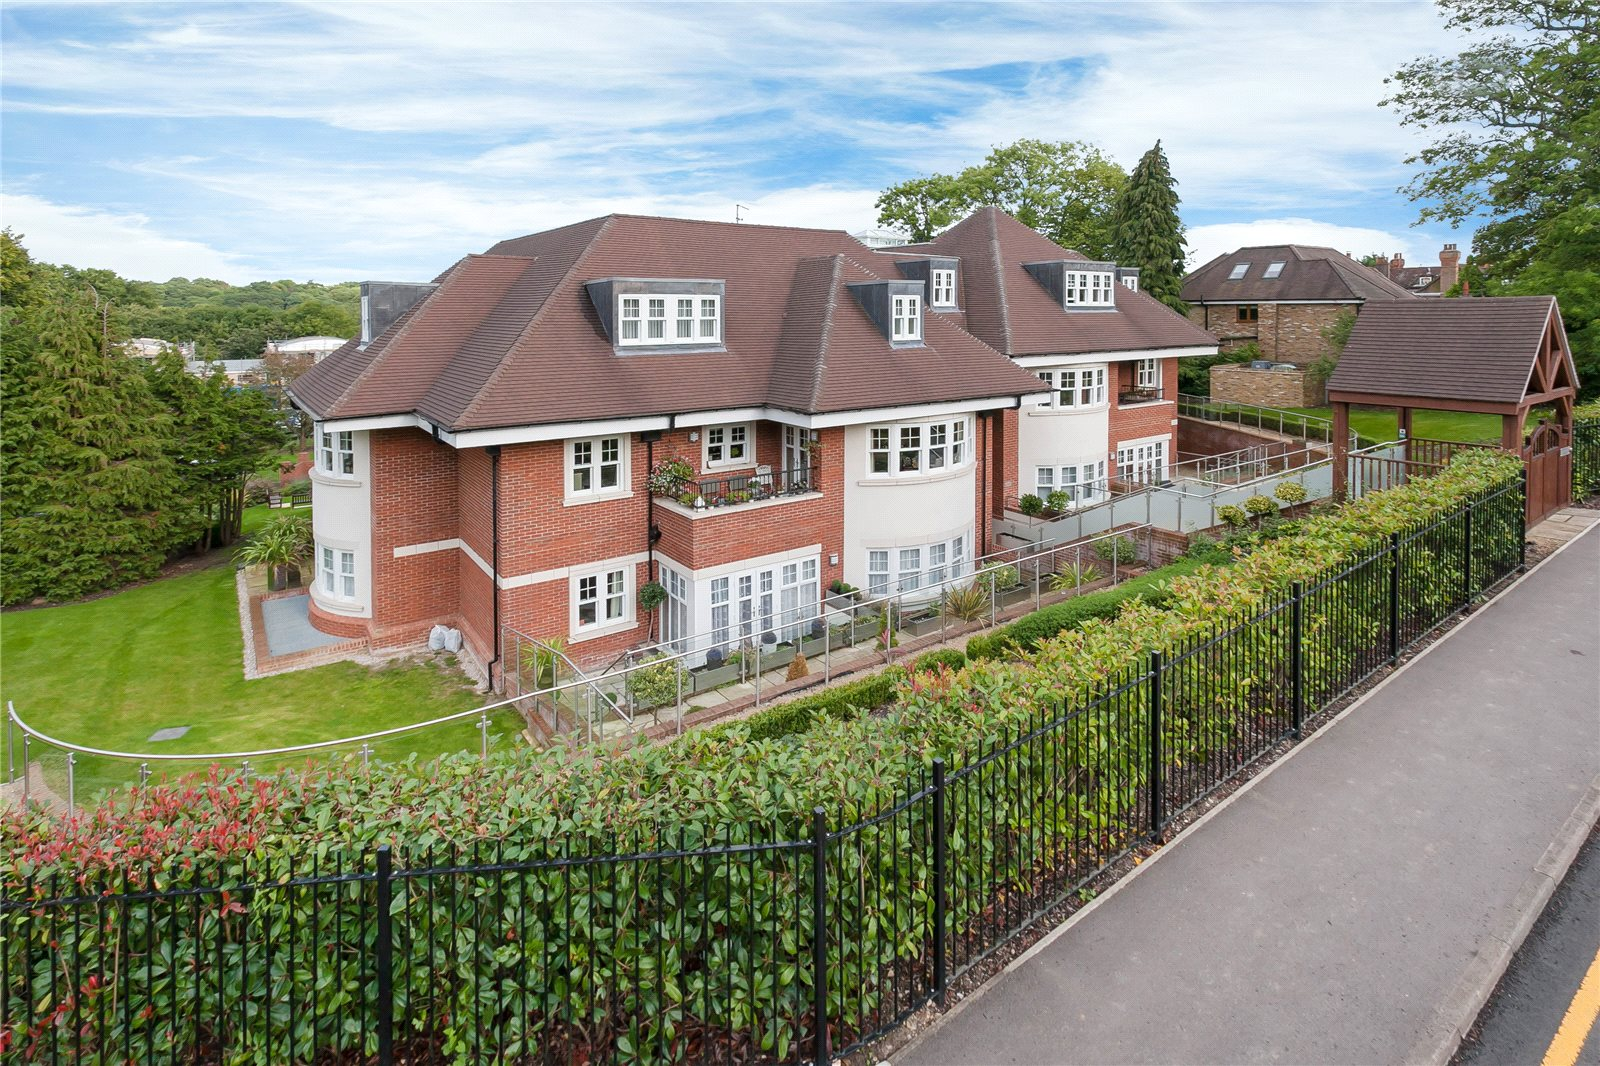 Apartamento por un Venta en Baytrees, 20 South Park View, Gerrards Cross, Buckinghamshire, SL9 Gerrards Cross, Inglaterra